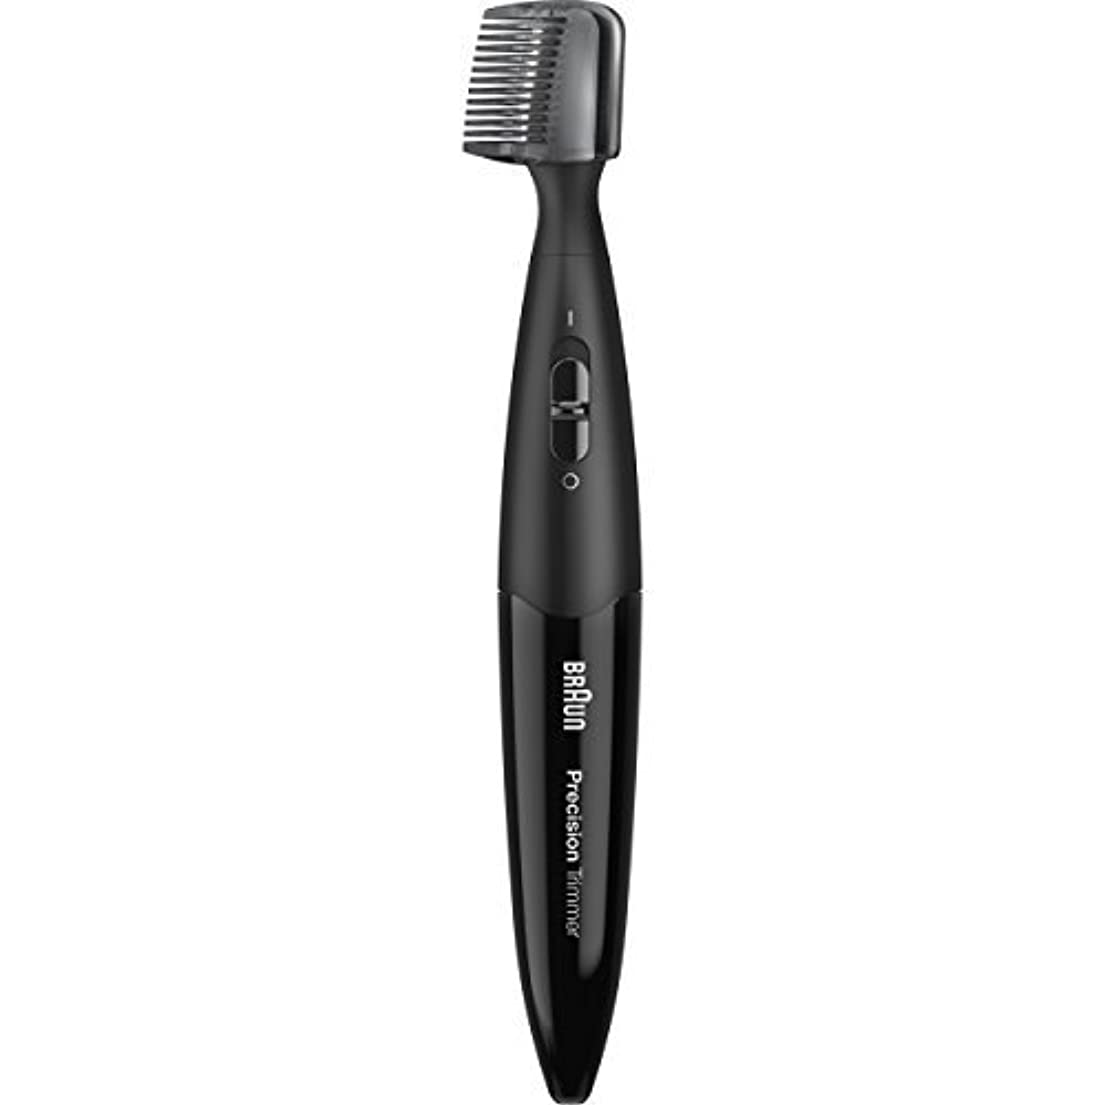 フルーティー偶然水没Braun Precision Trimmer PT5010, Men's Precision Beard, Ear & Nose, Mustache detailer, styler [並行輸入品]